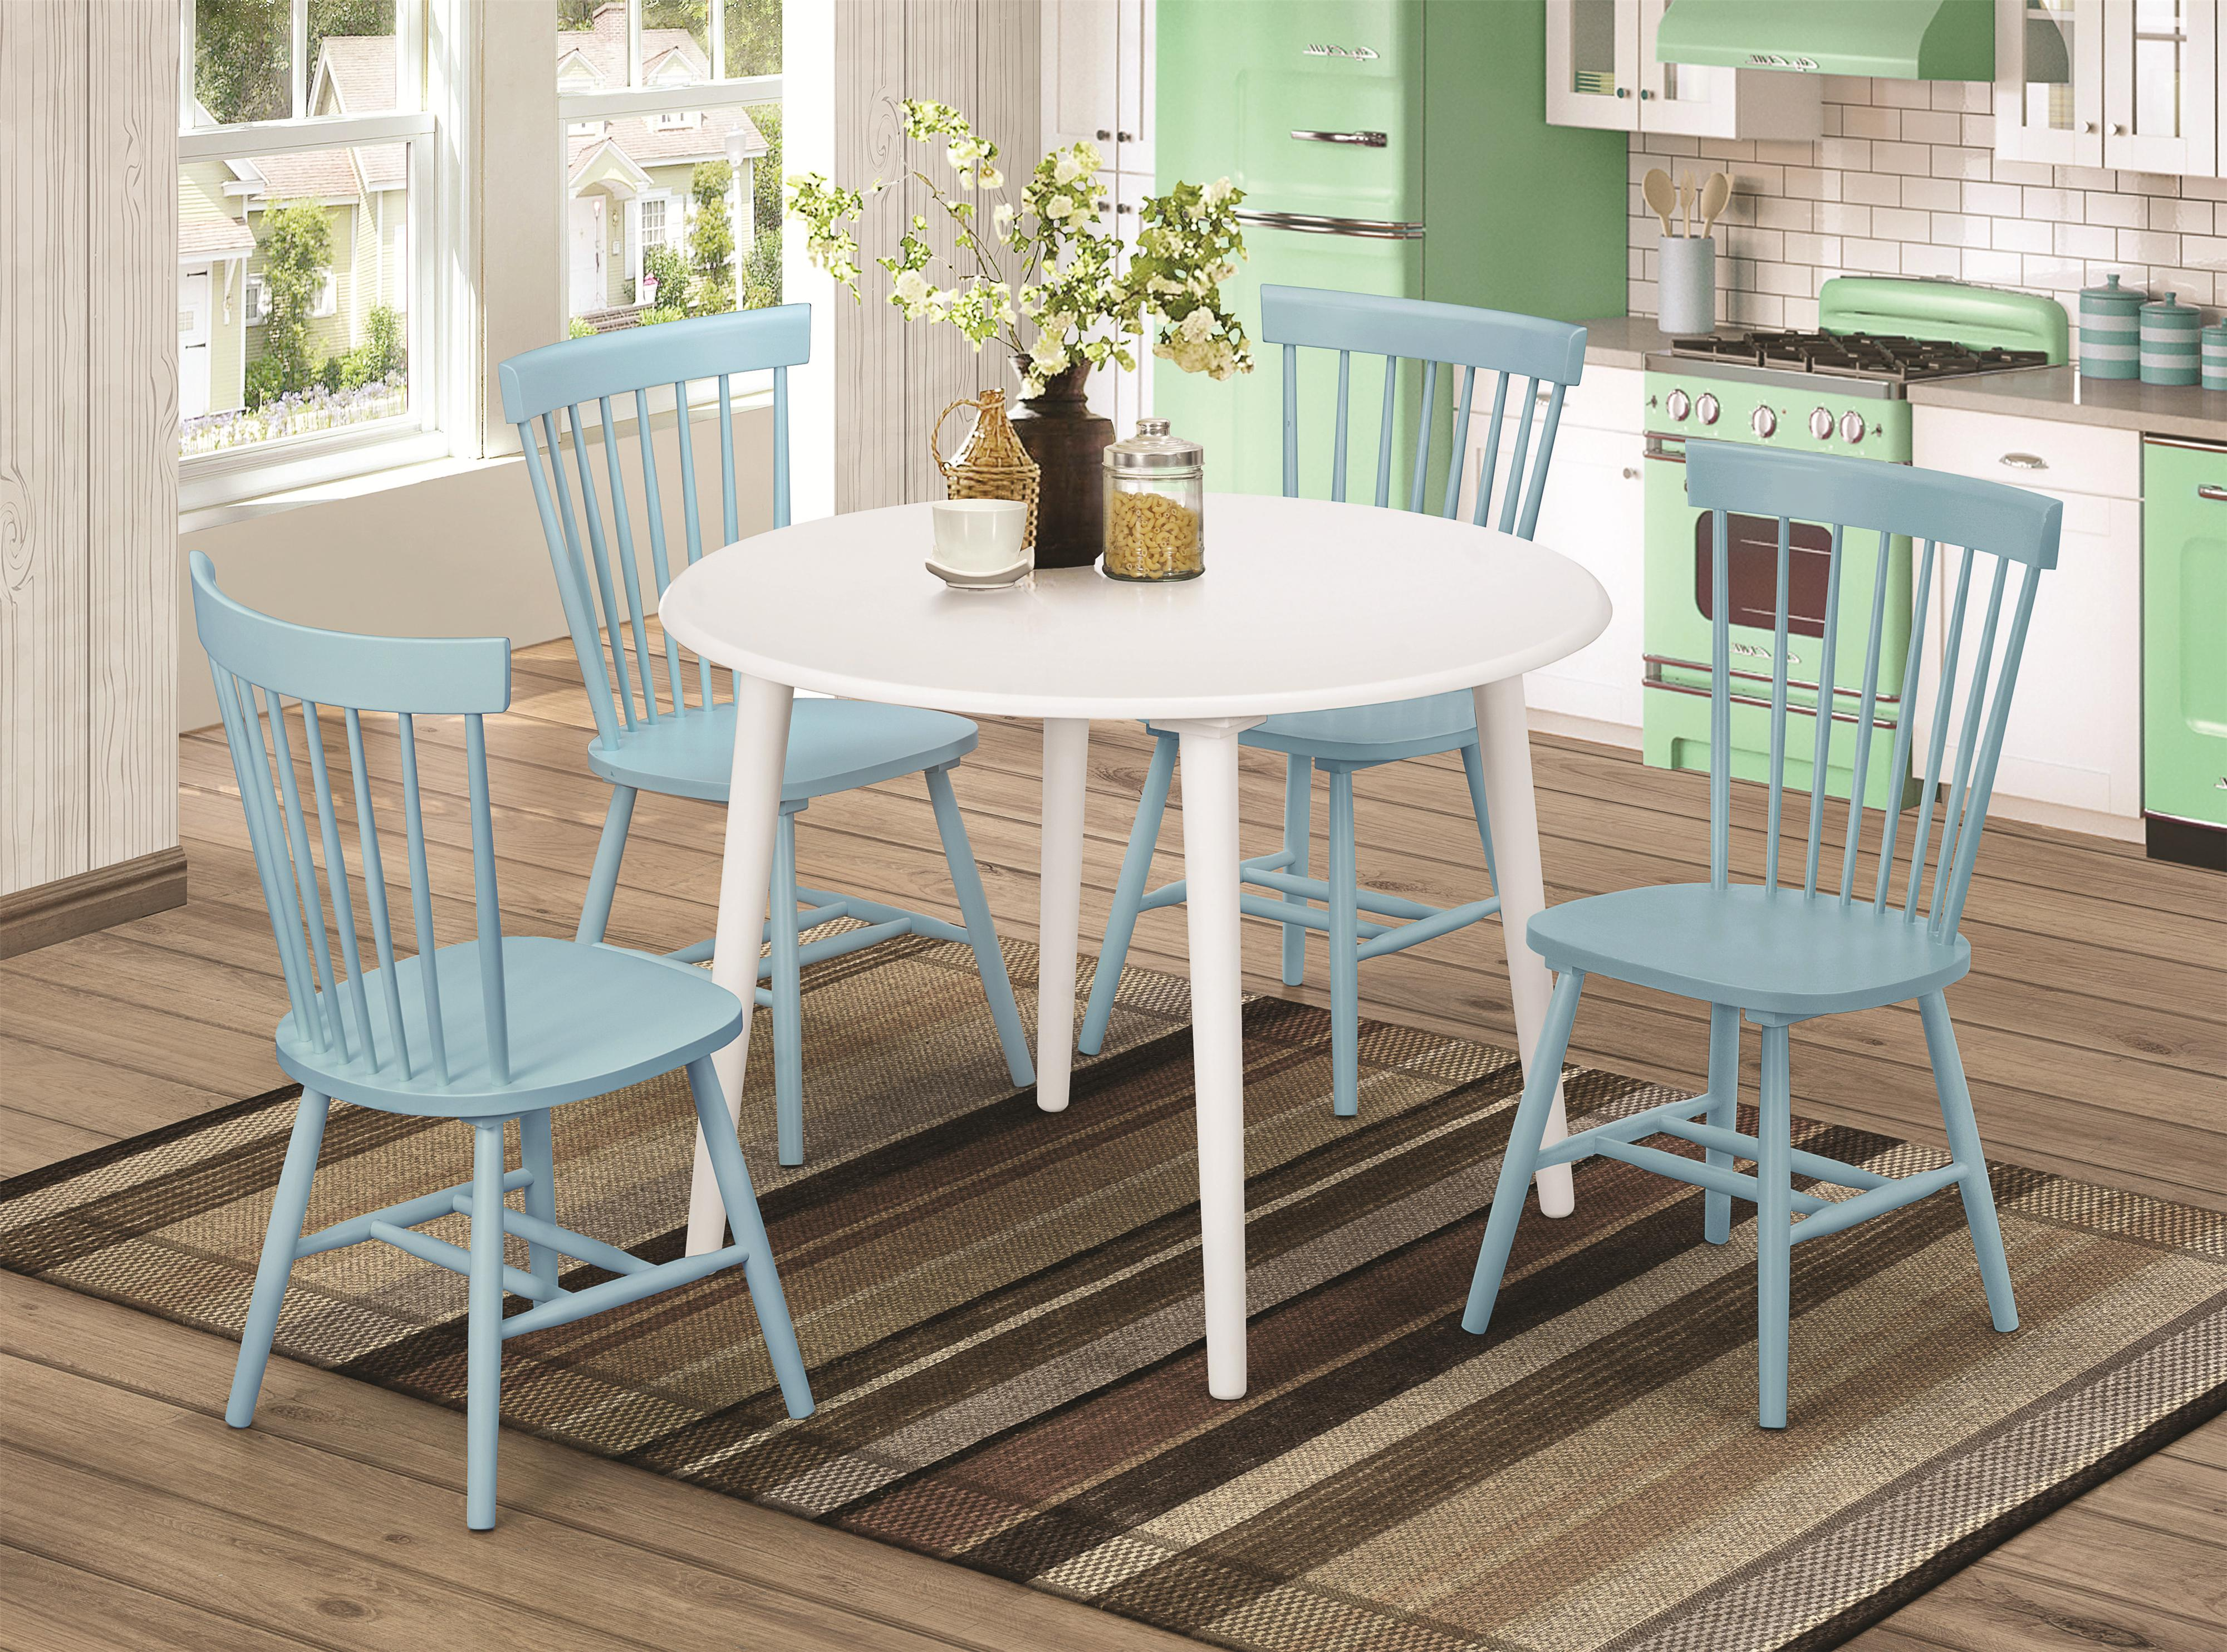 blue dining room set   Emmett Country Blue 5pc Dining Room Set w/Round Table ...